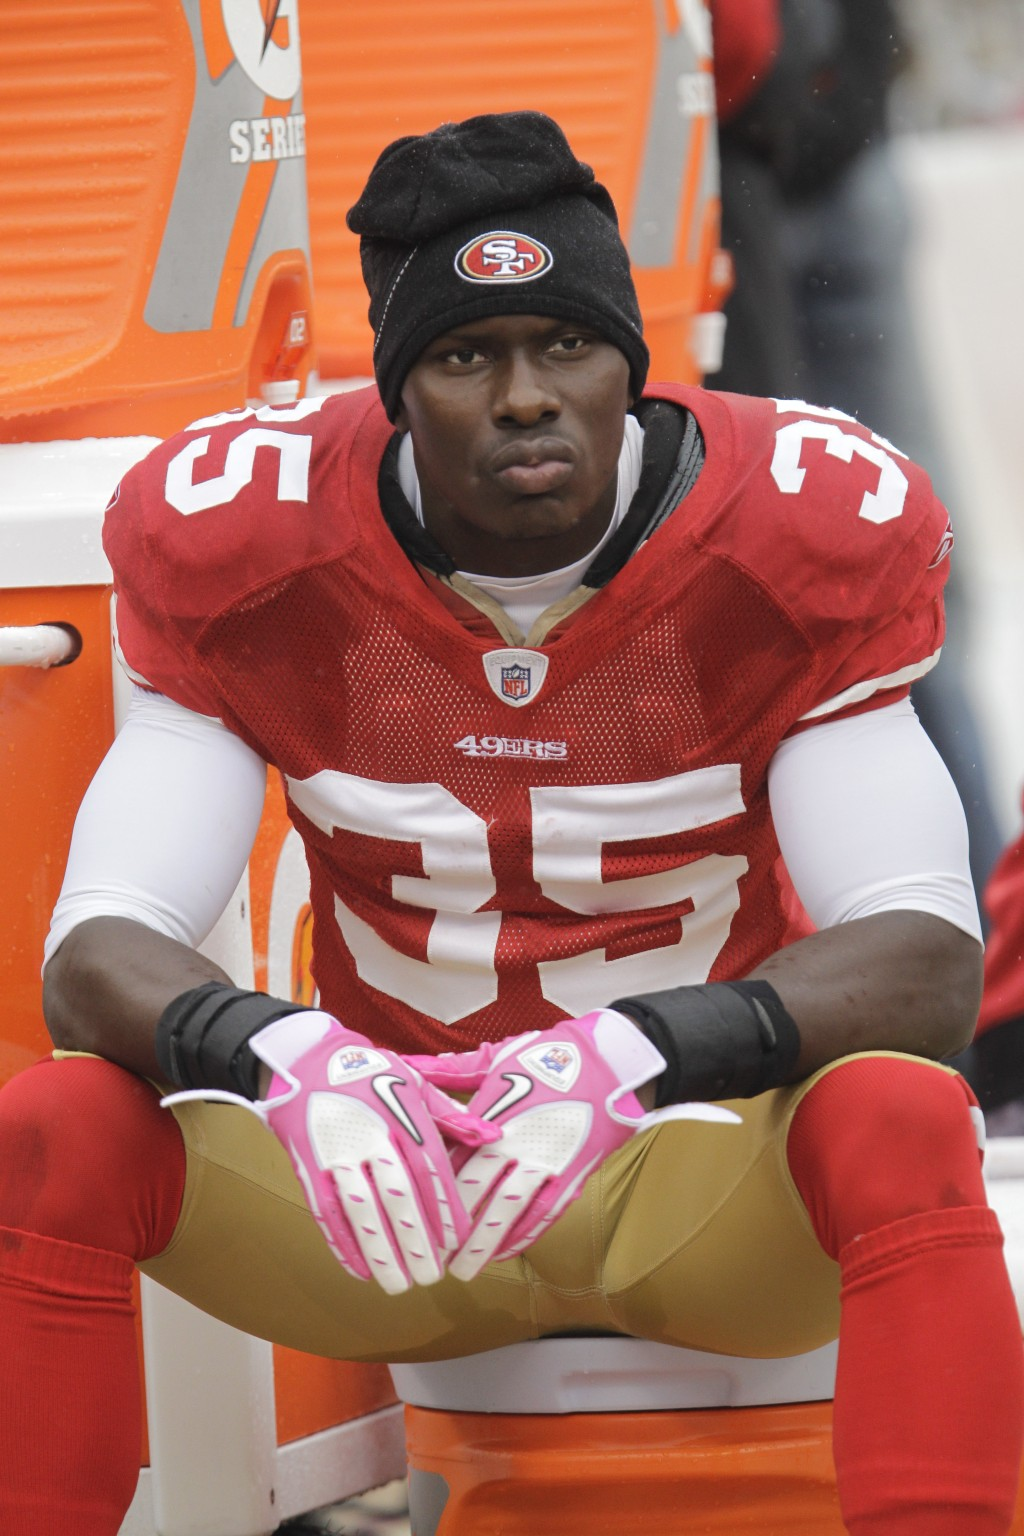 FILE - In this Oct. 17, 2010 file photo, San Francisco 49ers cornerback Phillip Adams (35) sits on the sideline during the first quarter of an NFL foo...